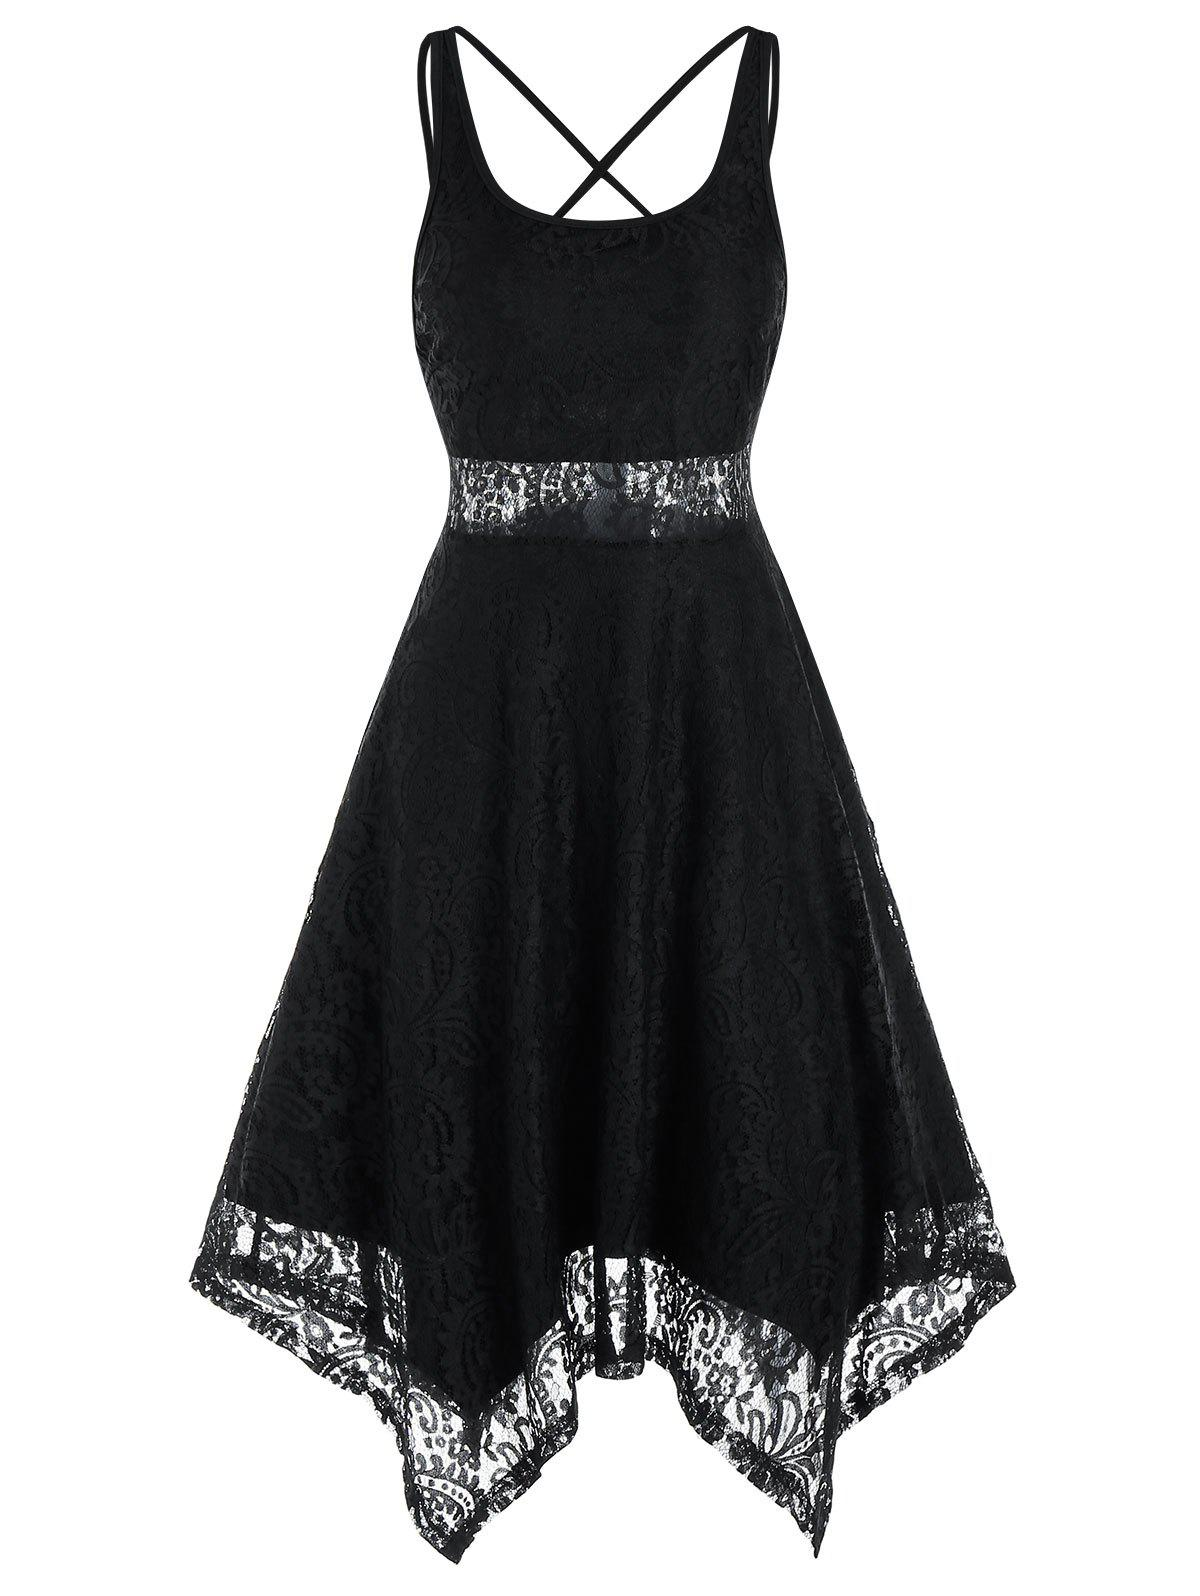 Outfits Sleeveless Strappy Backless Handkerchief Lace Dress